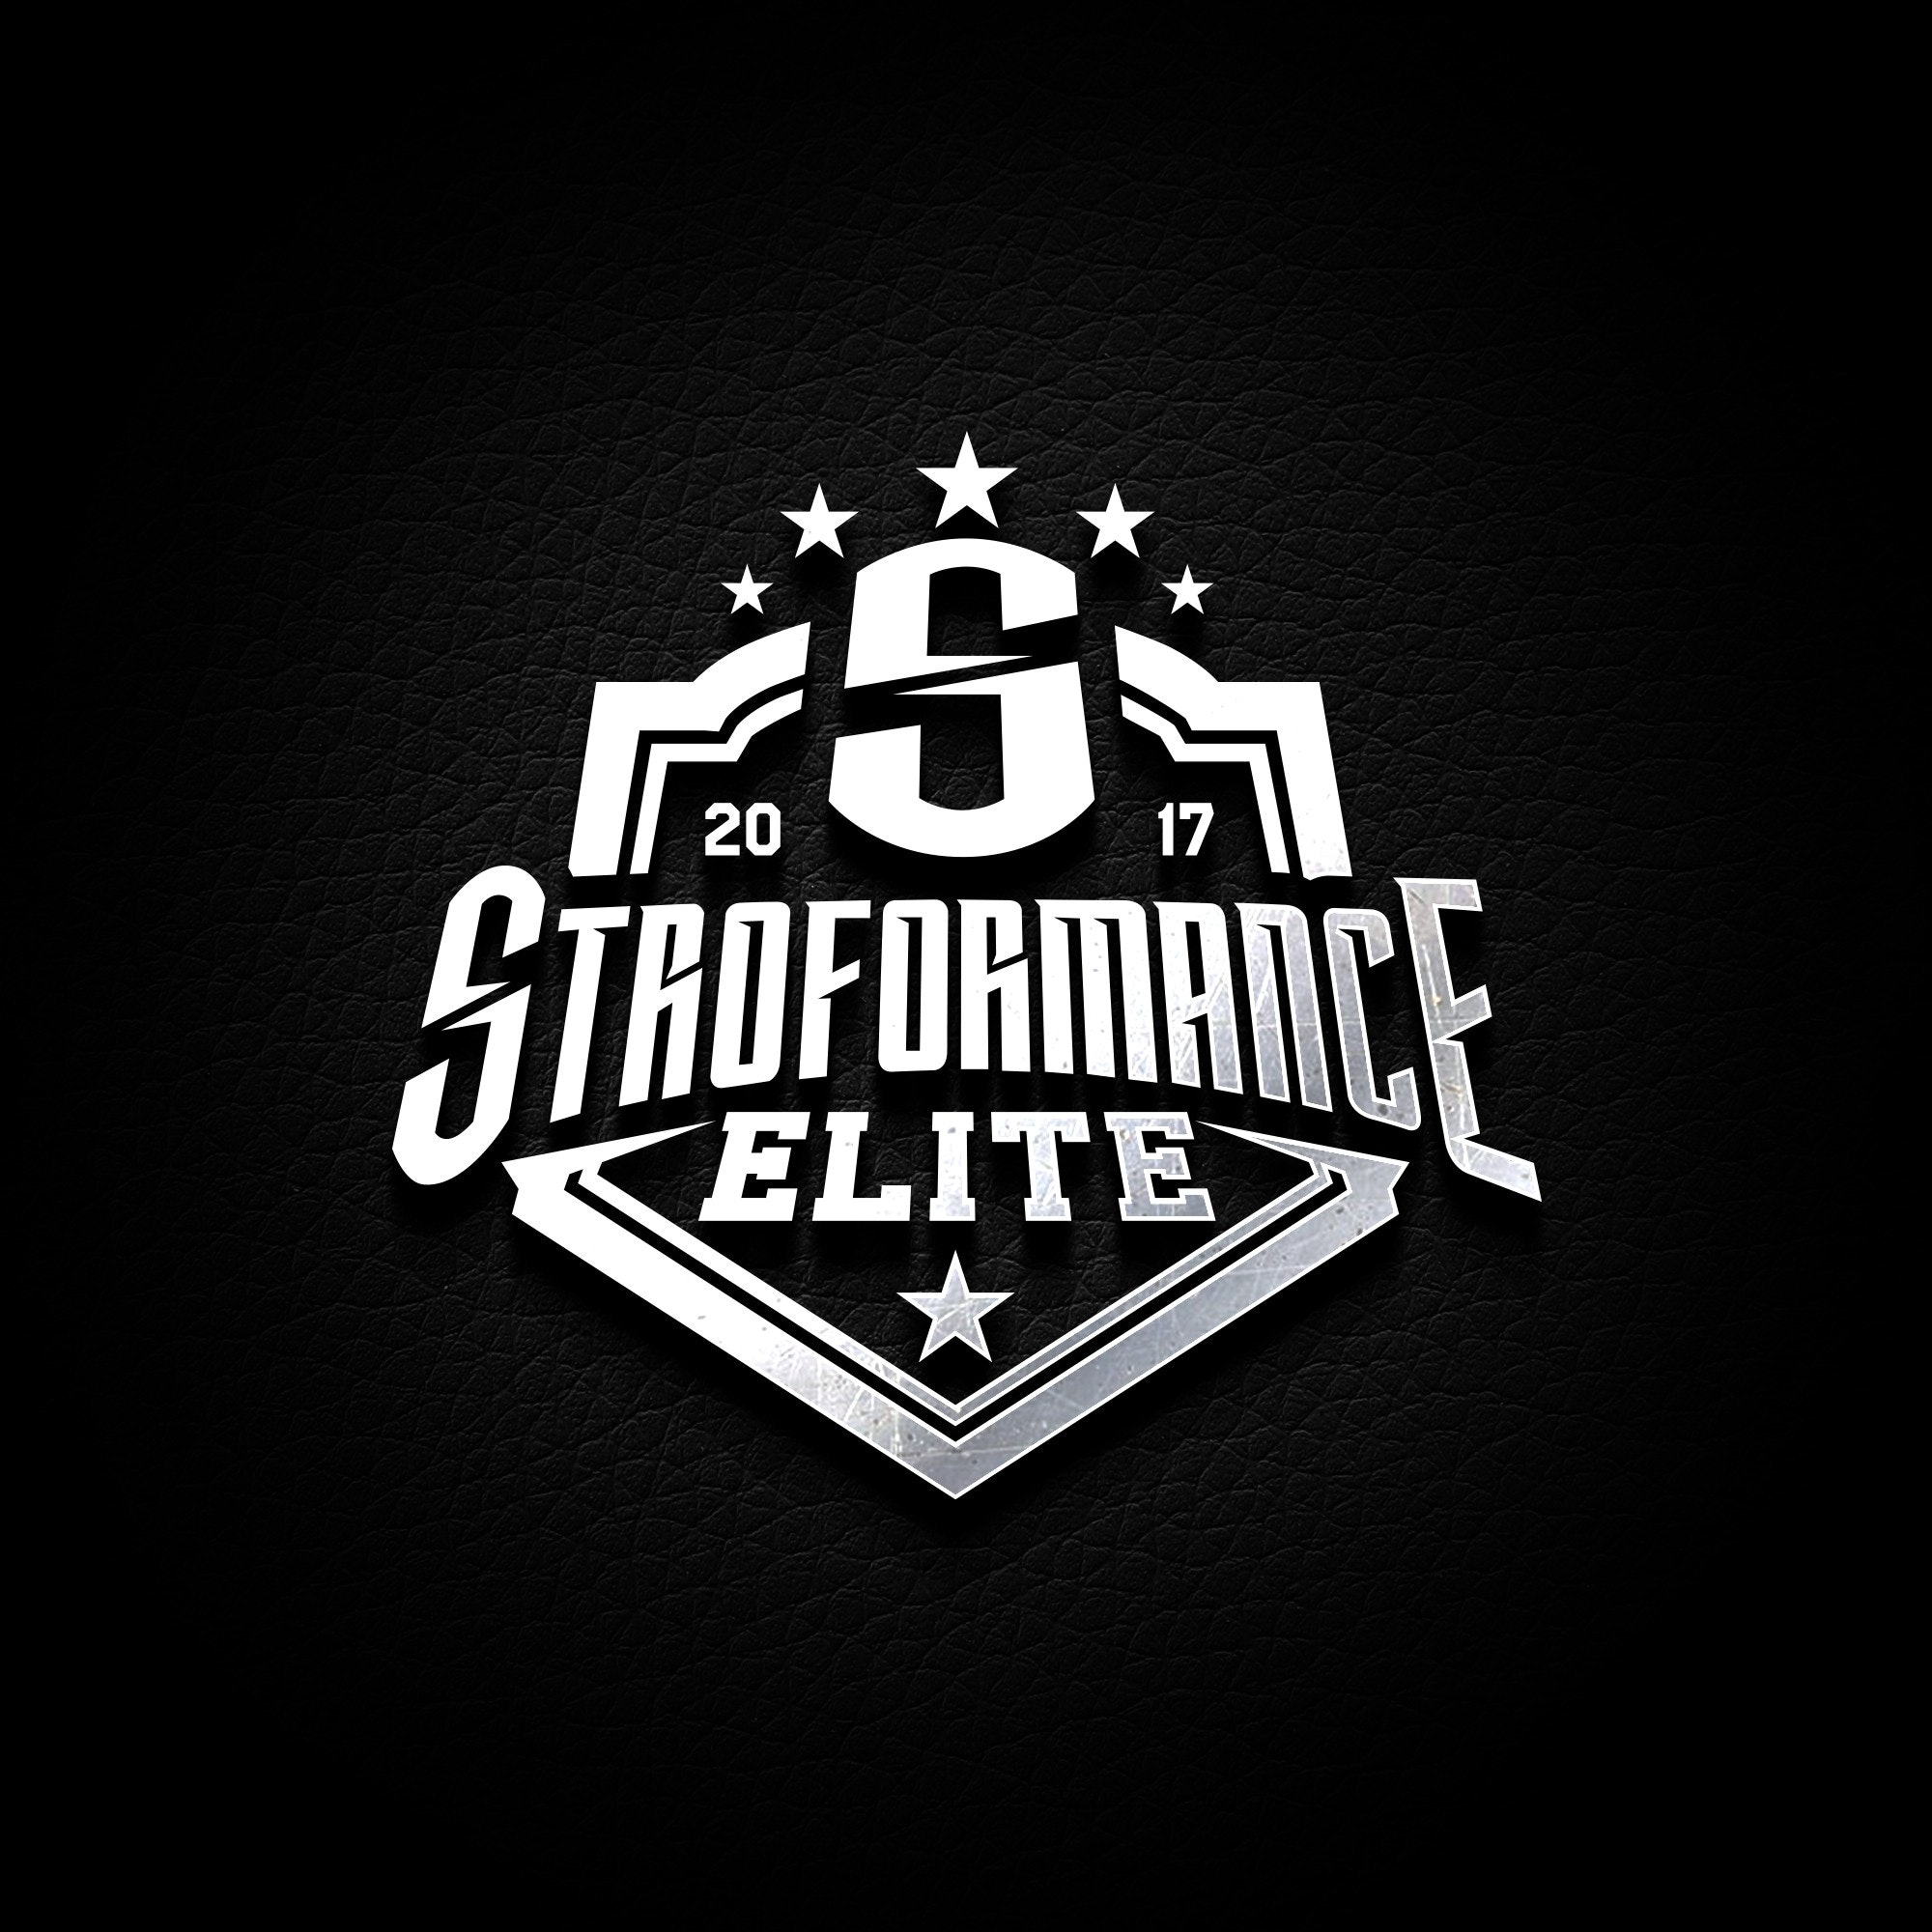 Logo for Stroformance Elite